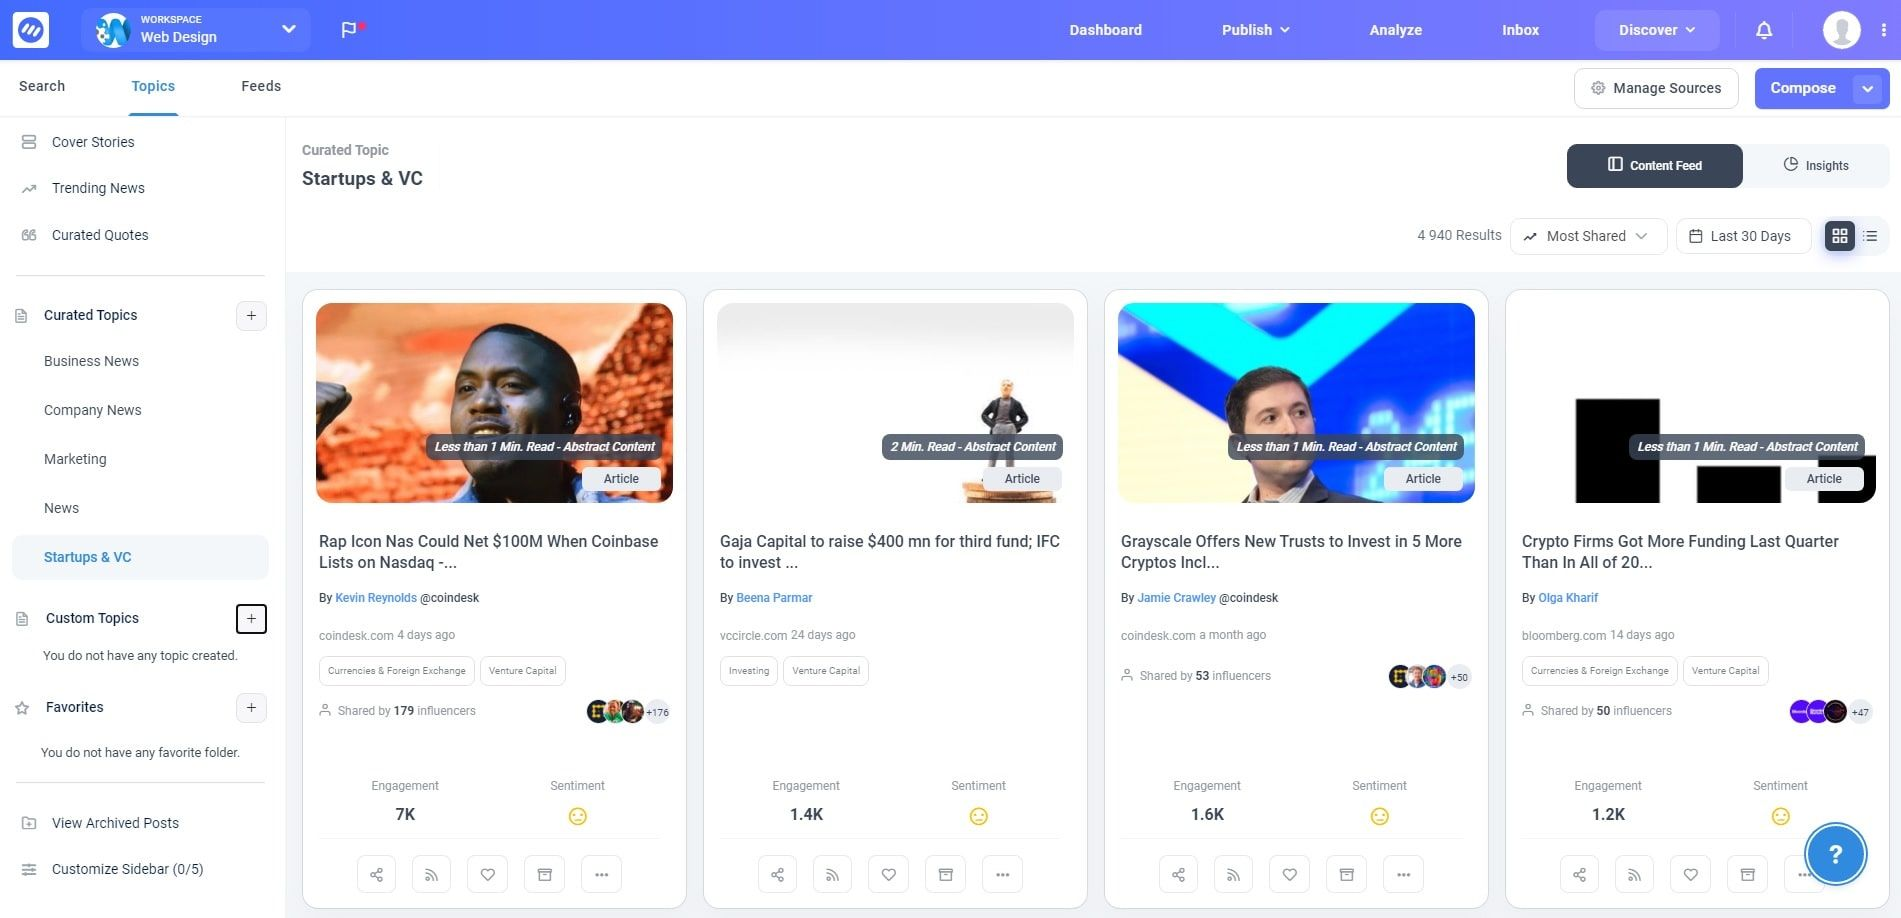 Explore the latest news and plan your social media content with ContentStudio